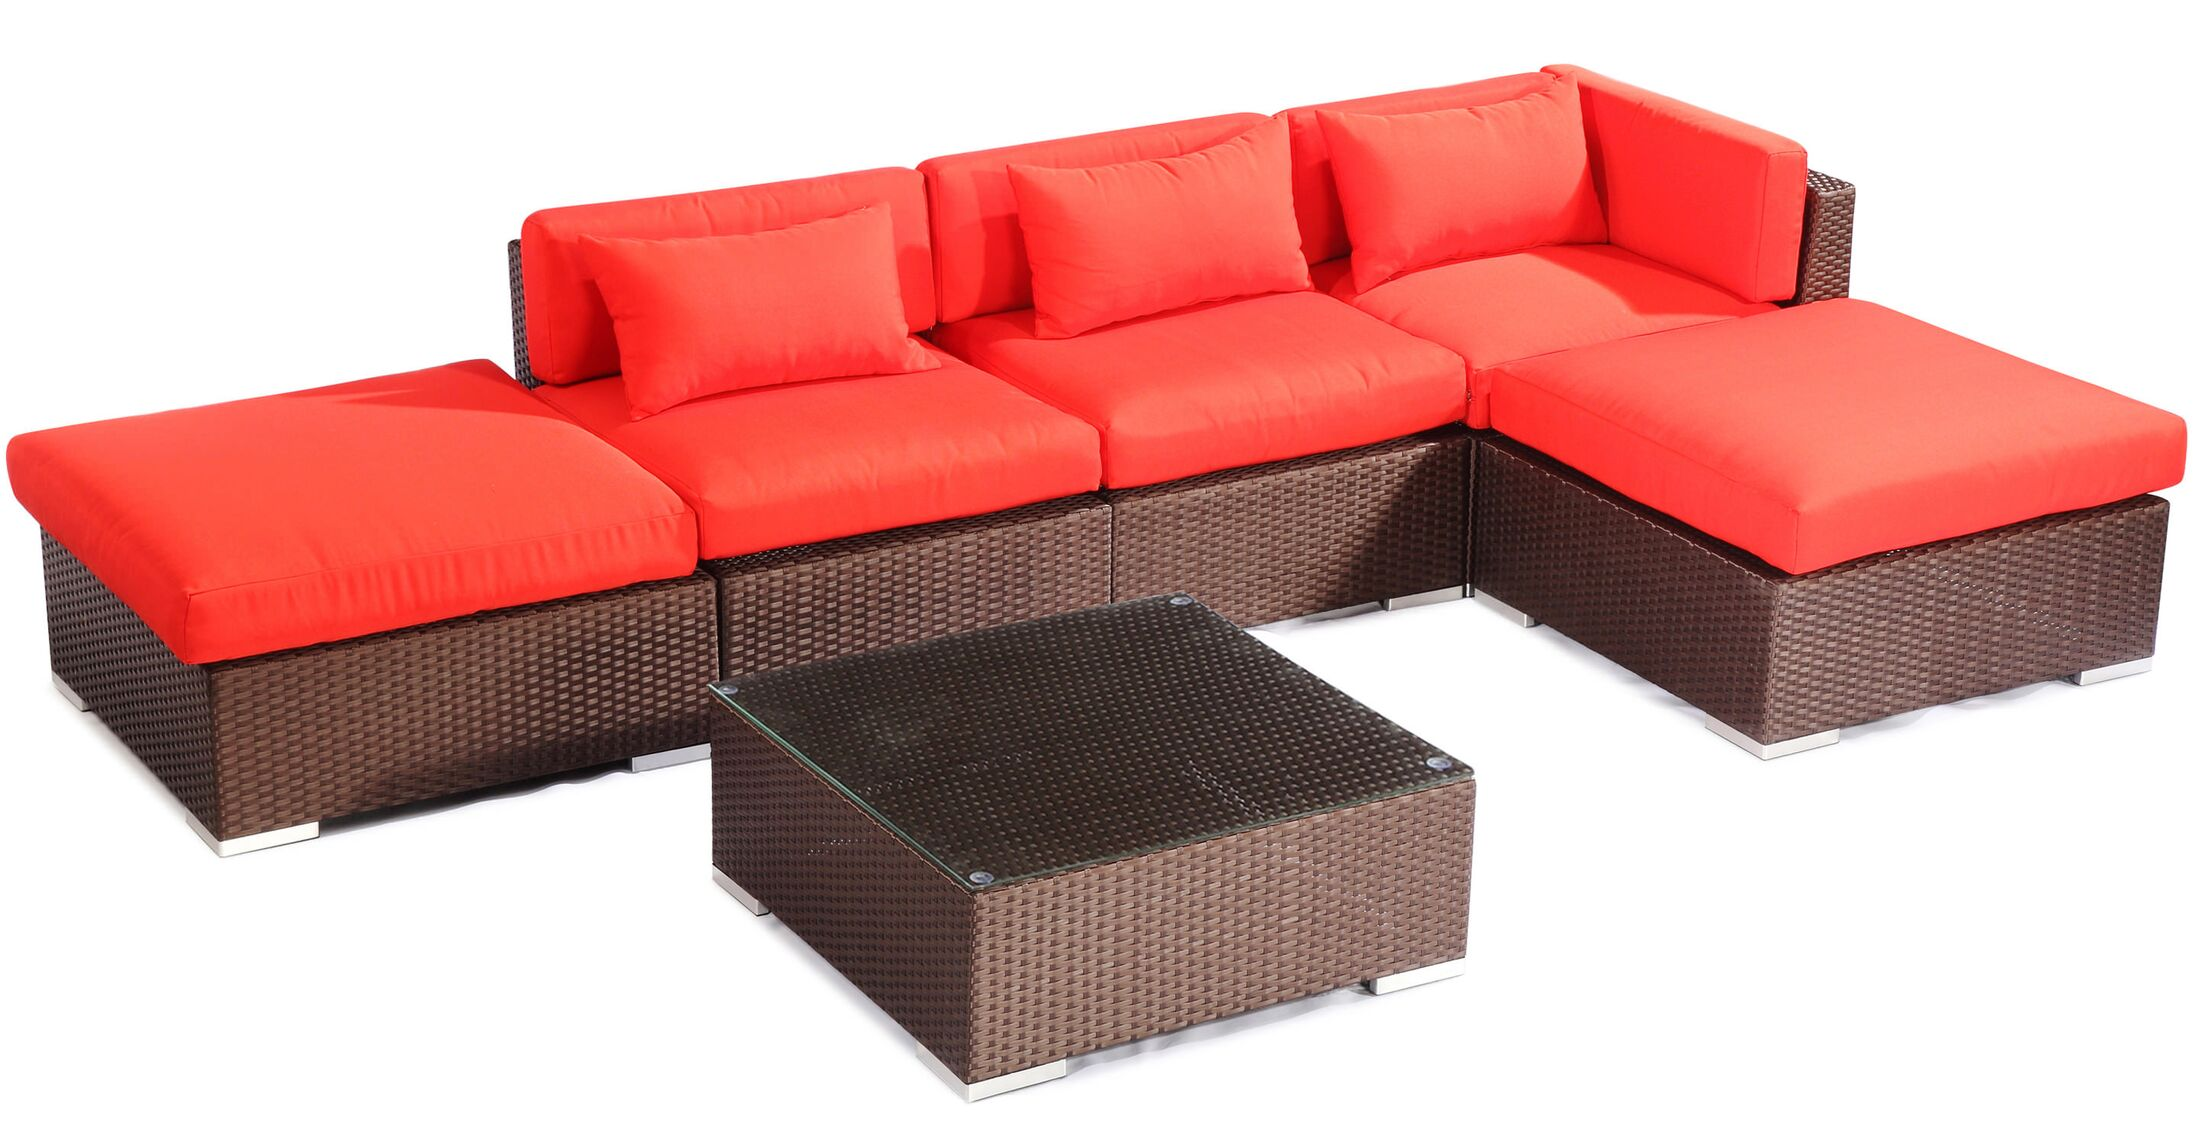 Poipu 6 Piece Sectional Set with Cushions Fabric: Red, Color: Brown